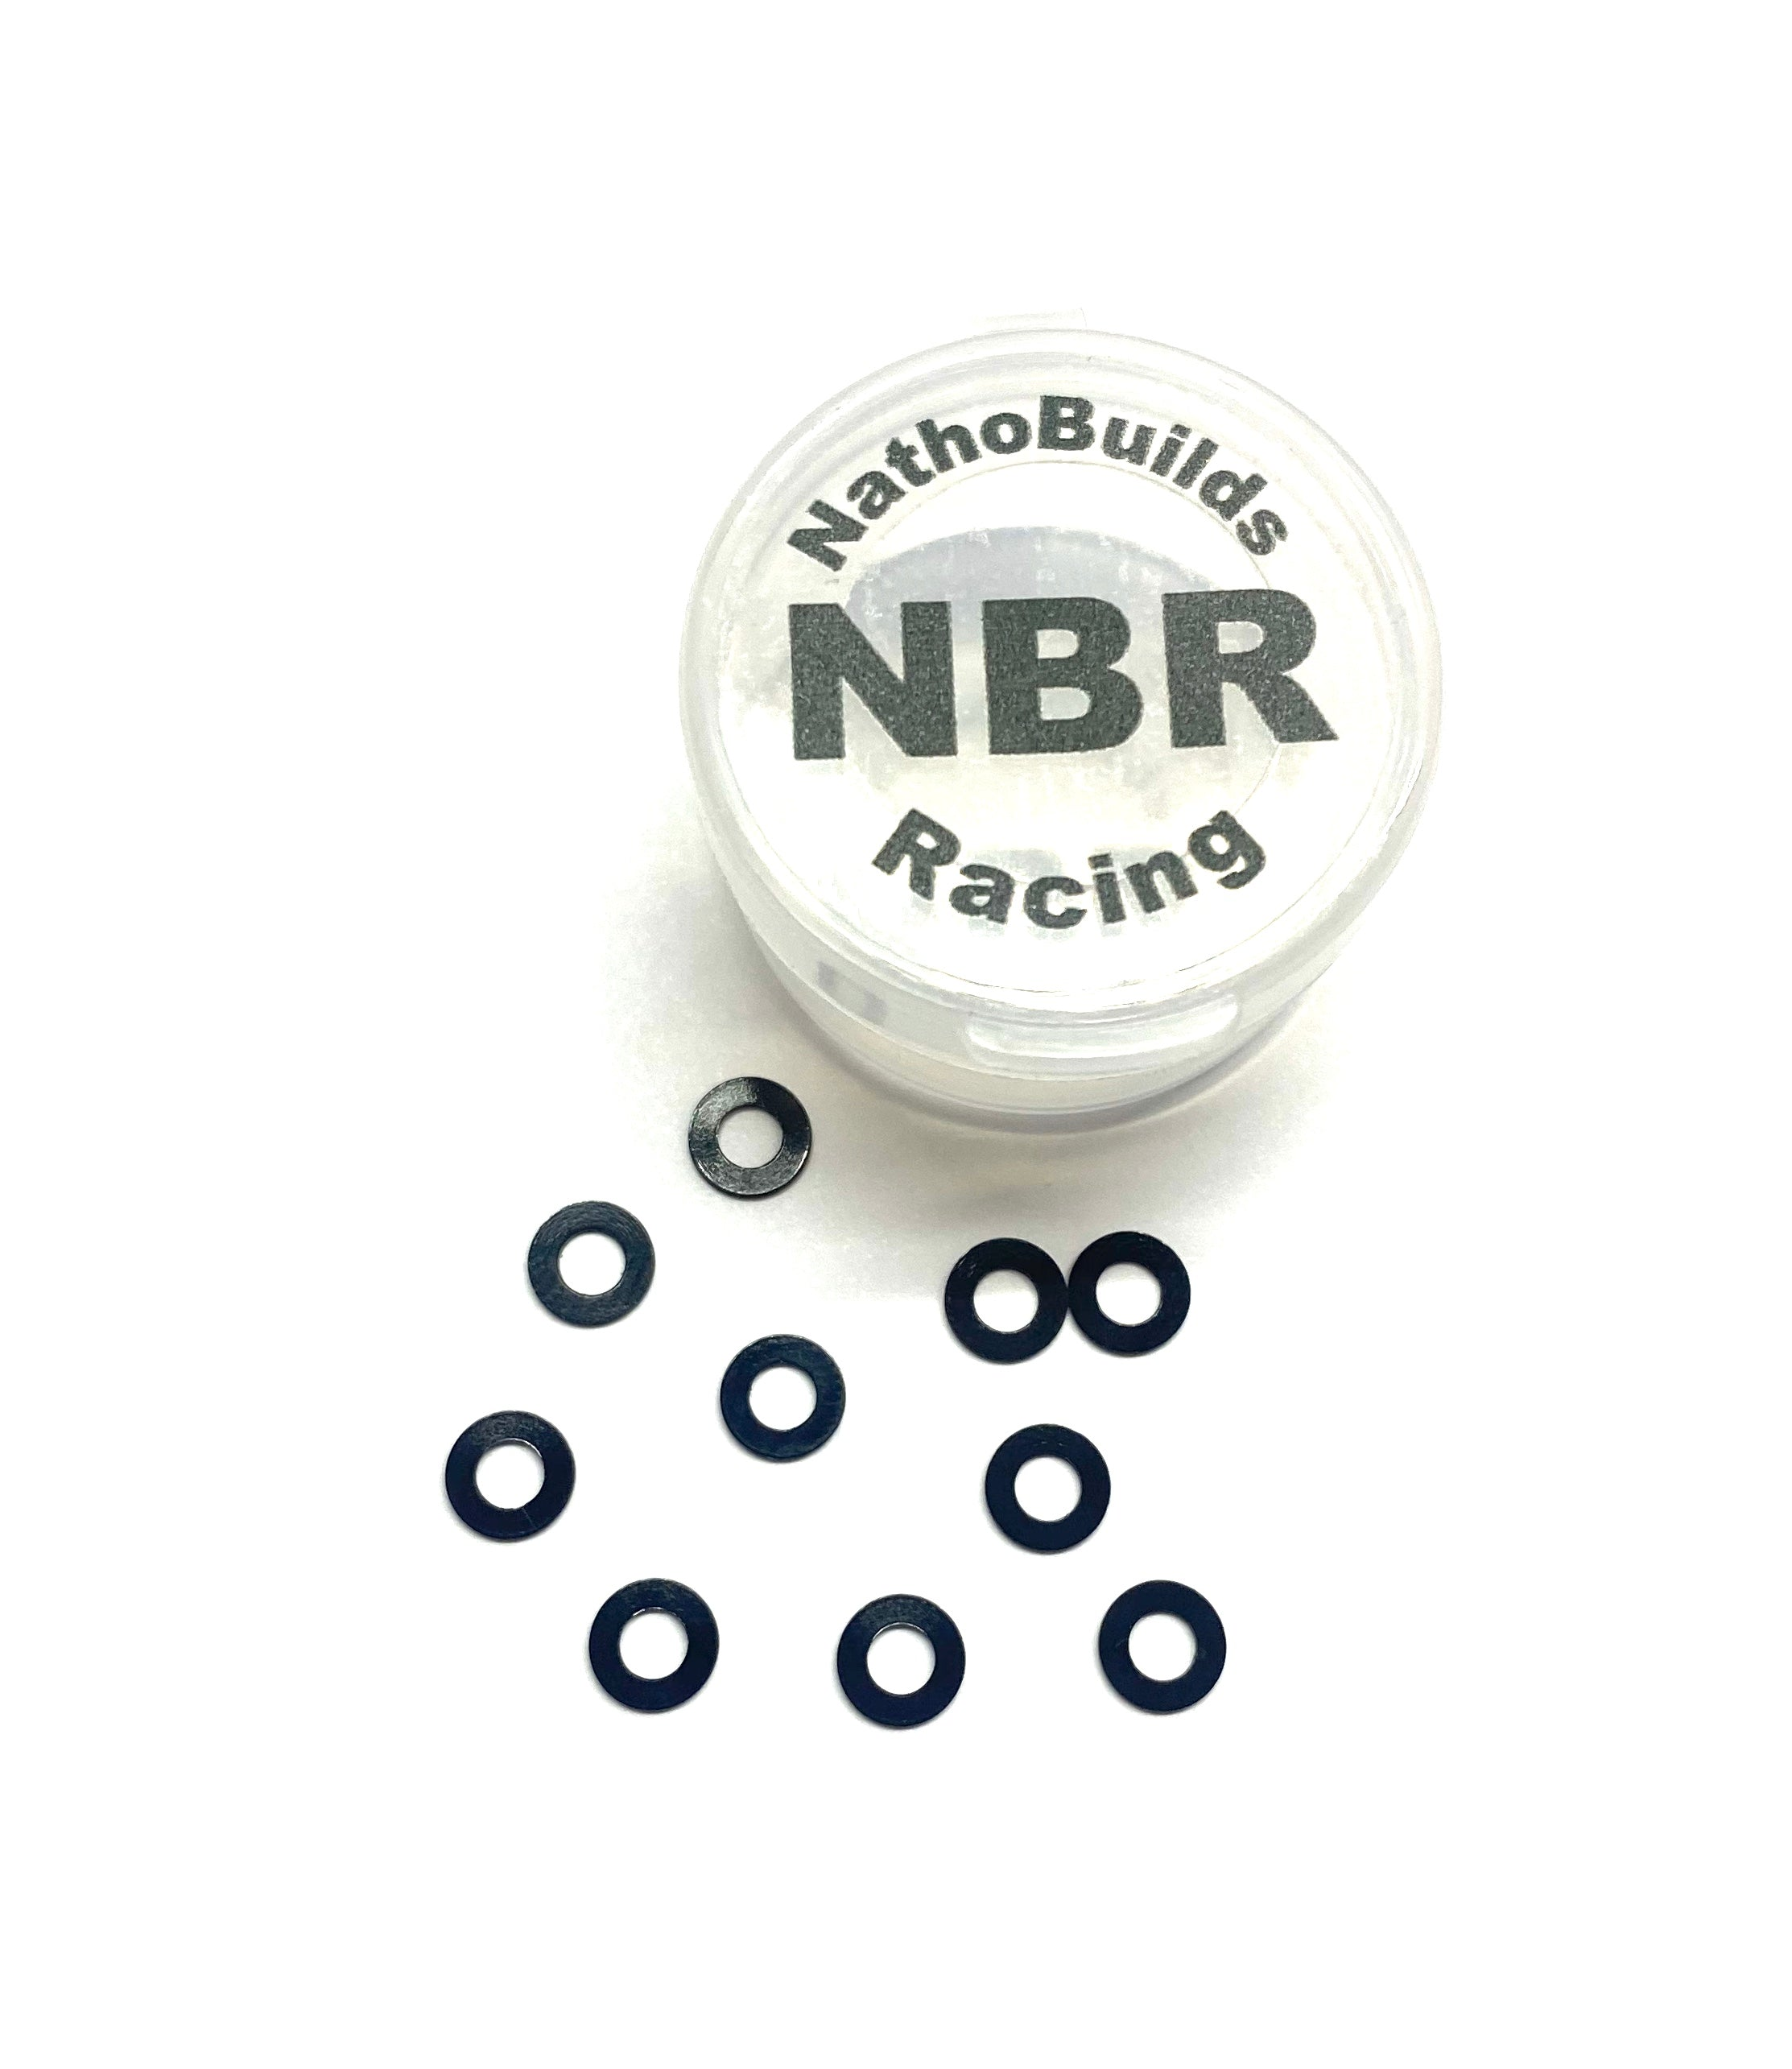 NathoBuilds- M3 Ball Stud Washers 0.5mm 10pcs Black